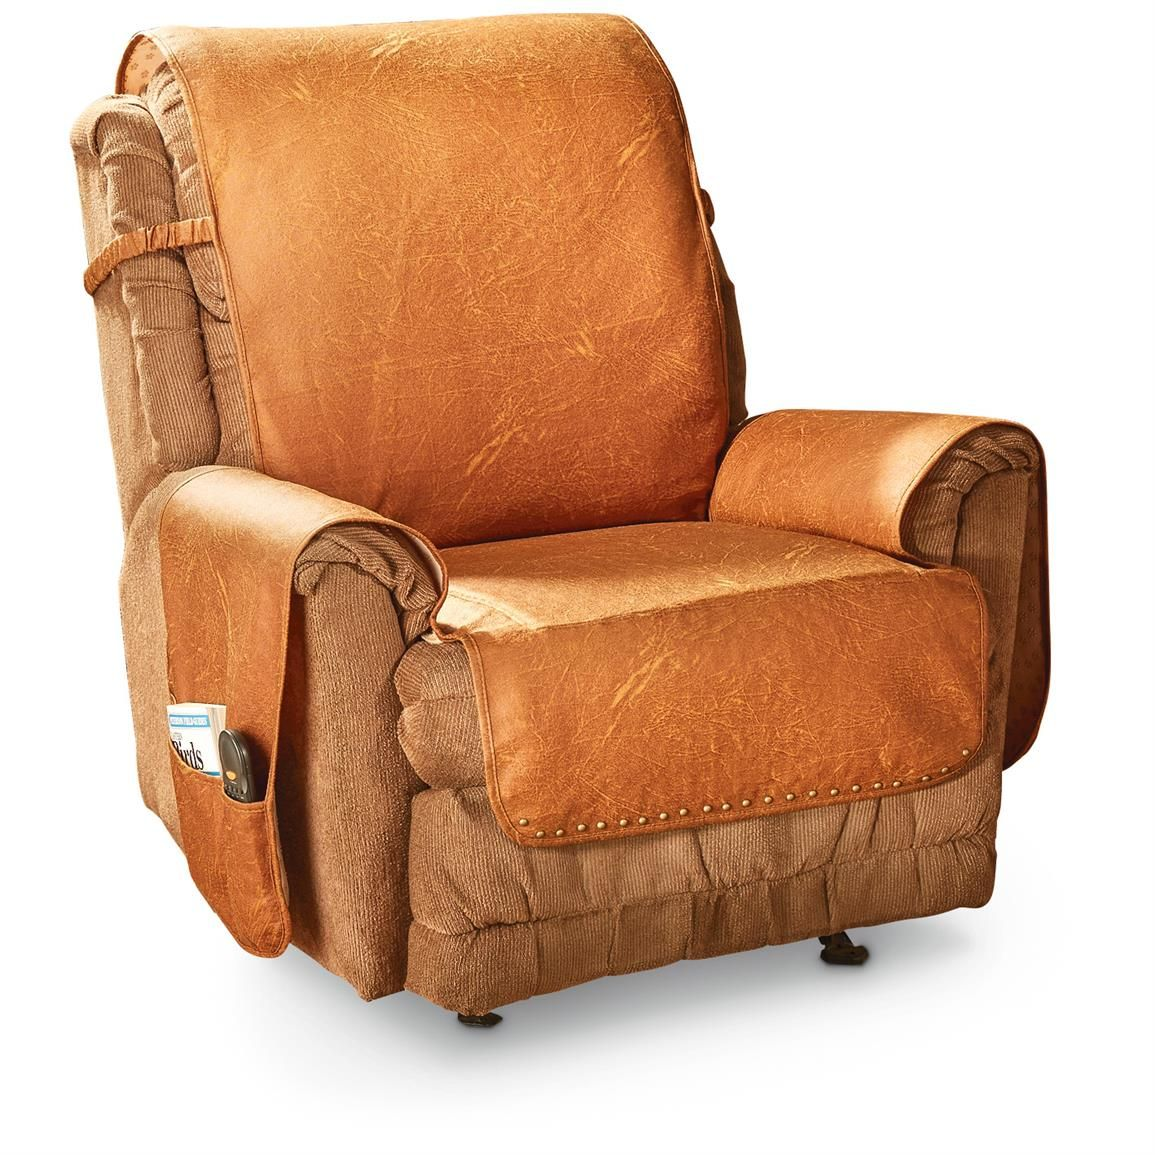 Faux Leather Recliner Cover Recliner Cover Arm Chair Covers Leather Recliner